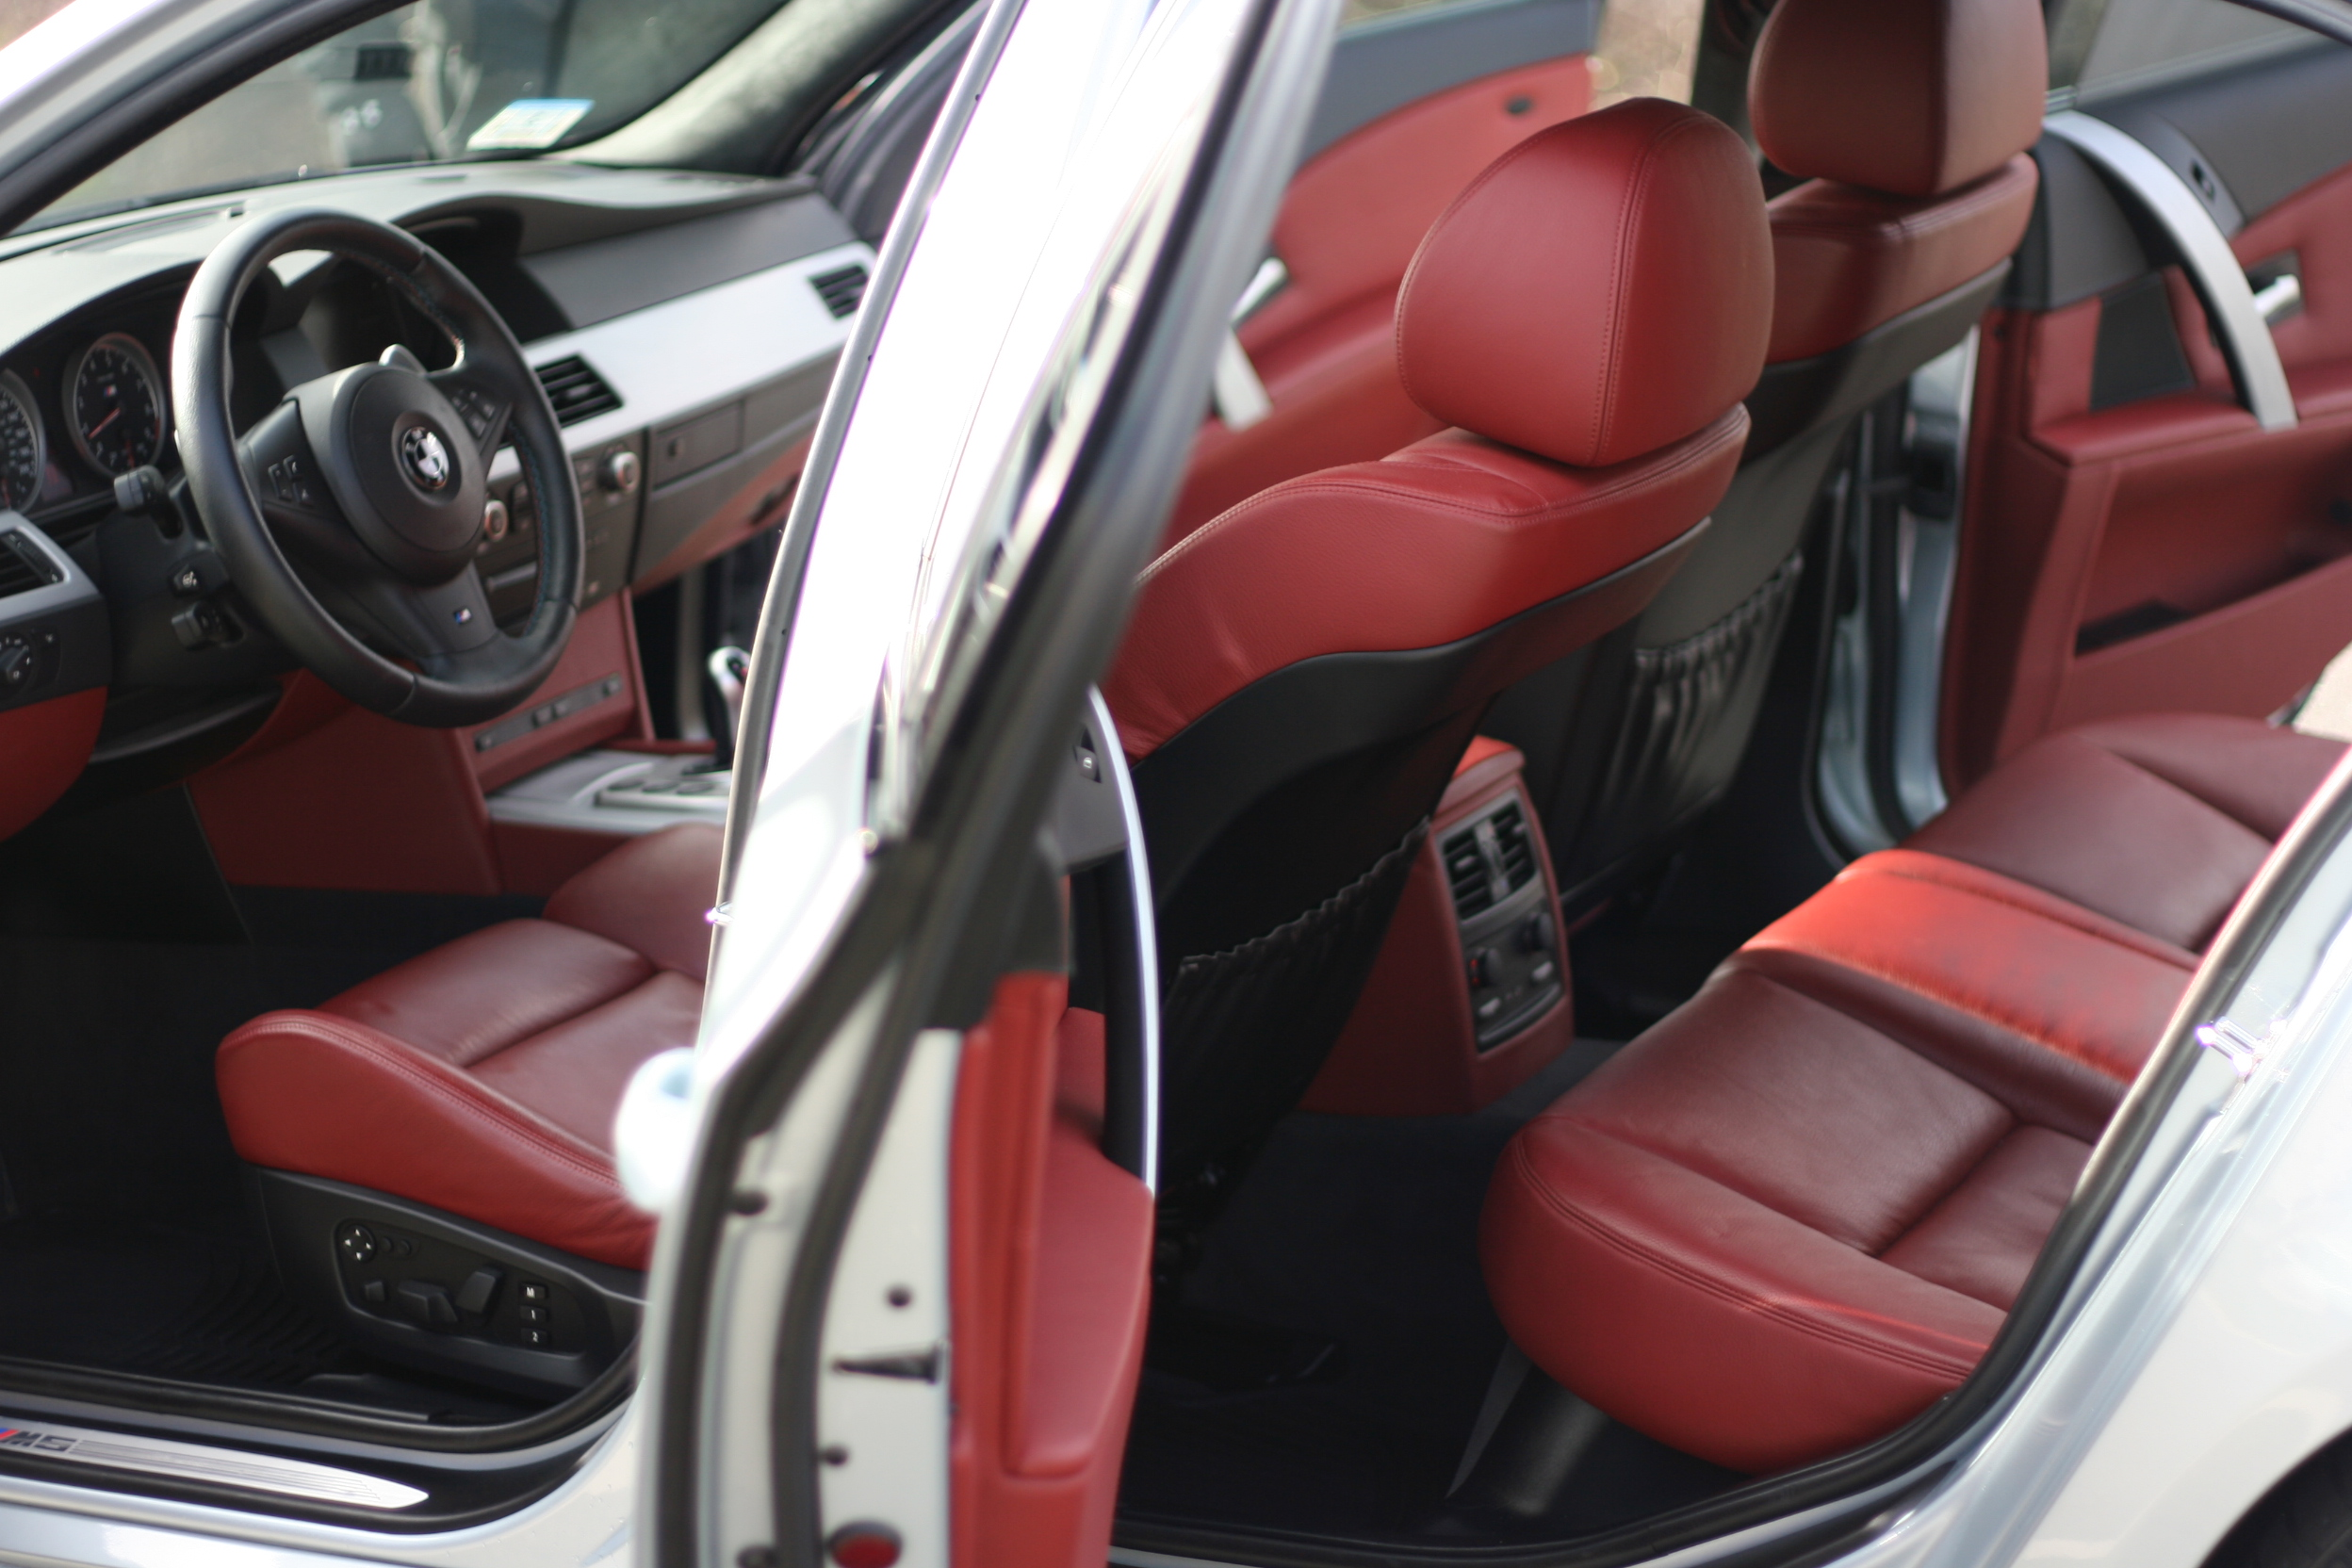 Worksheet. E60 0310 For Sale 2006 BMW M5 E60 For Sale Silverstone